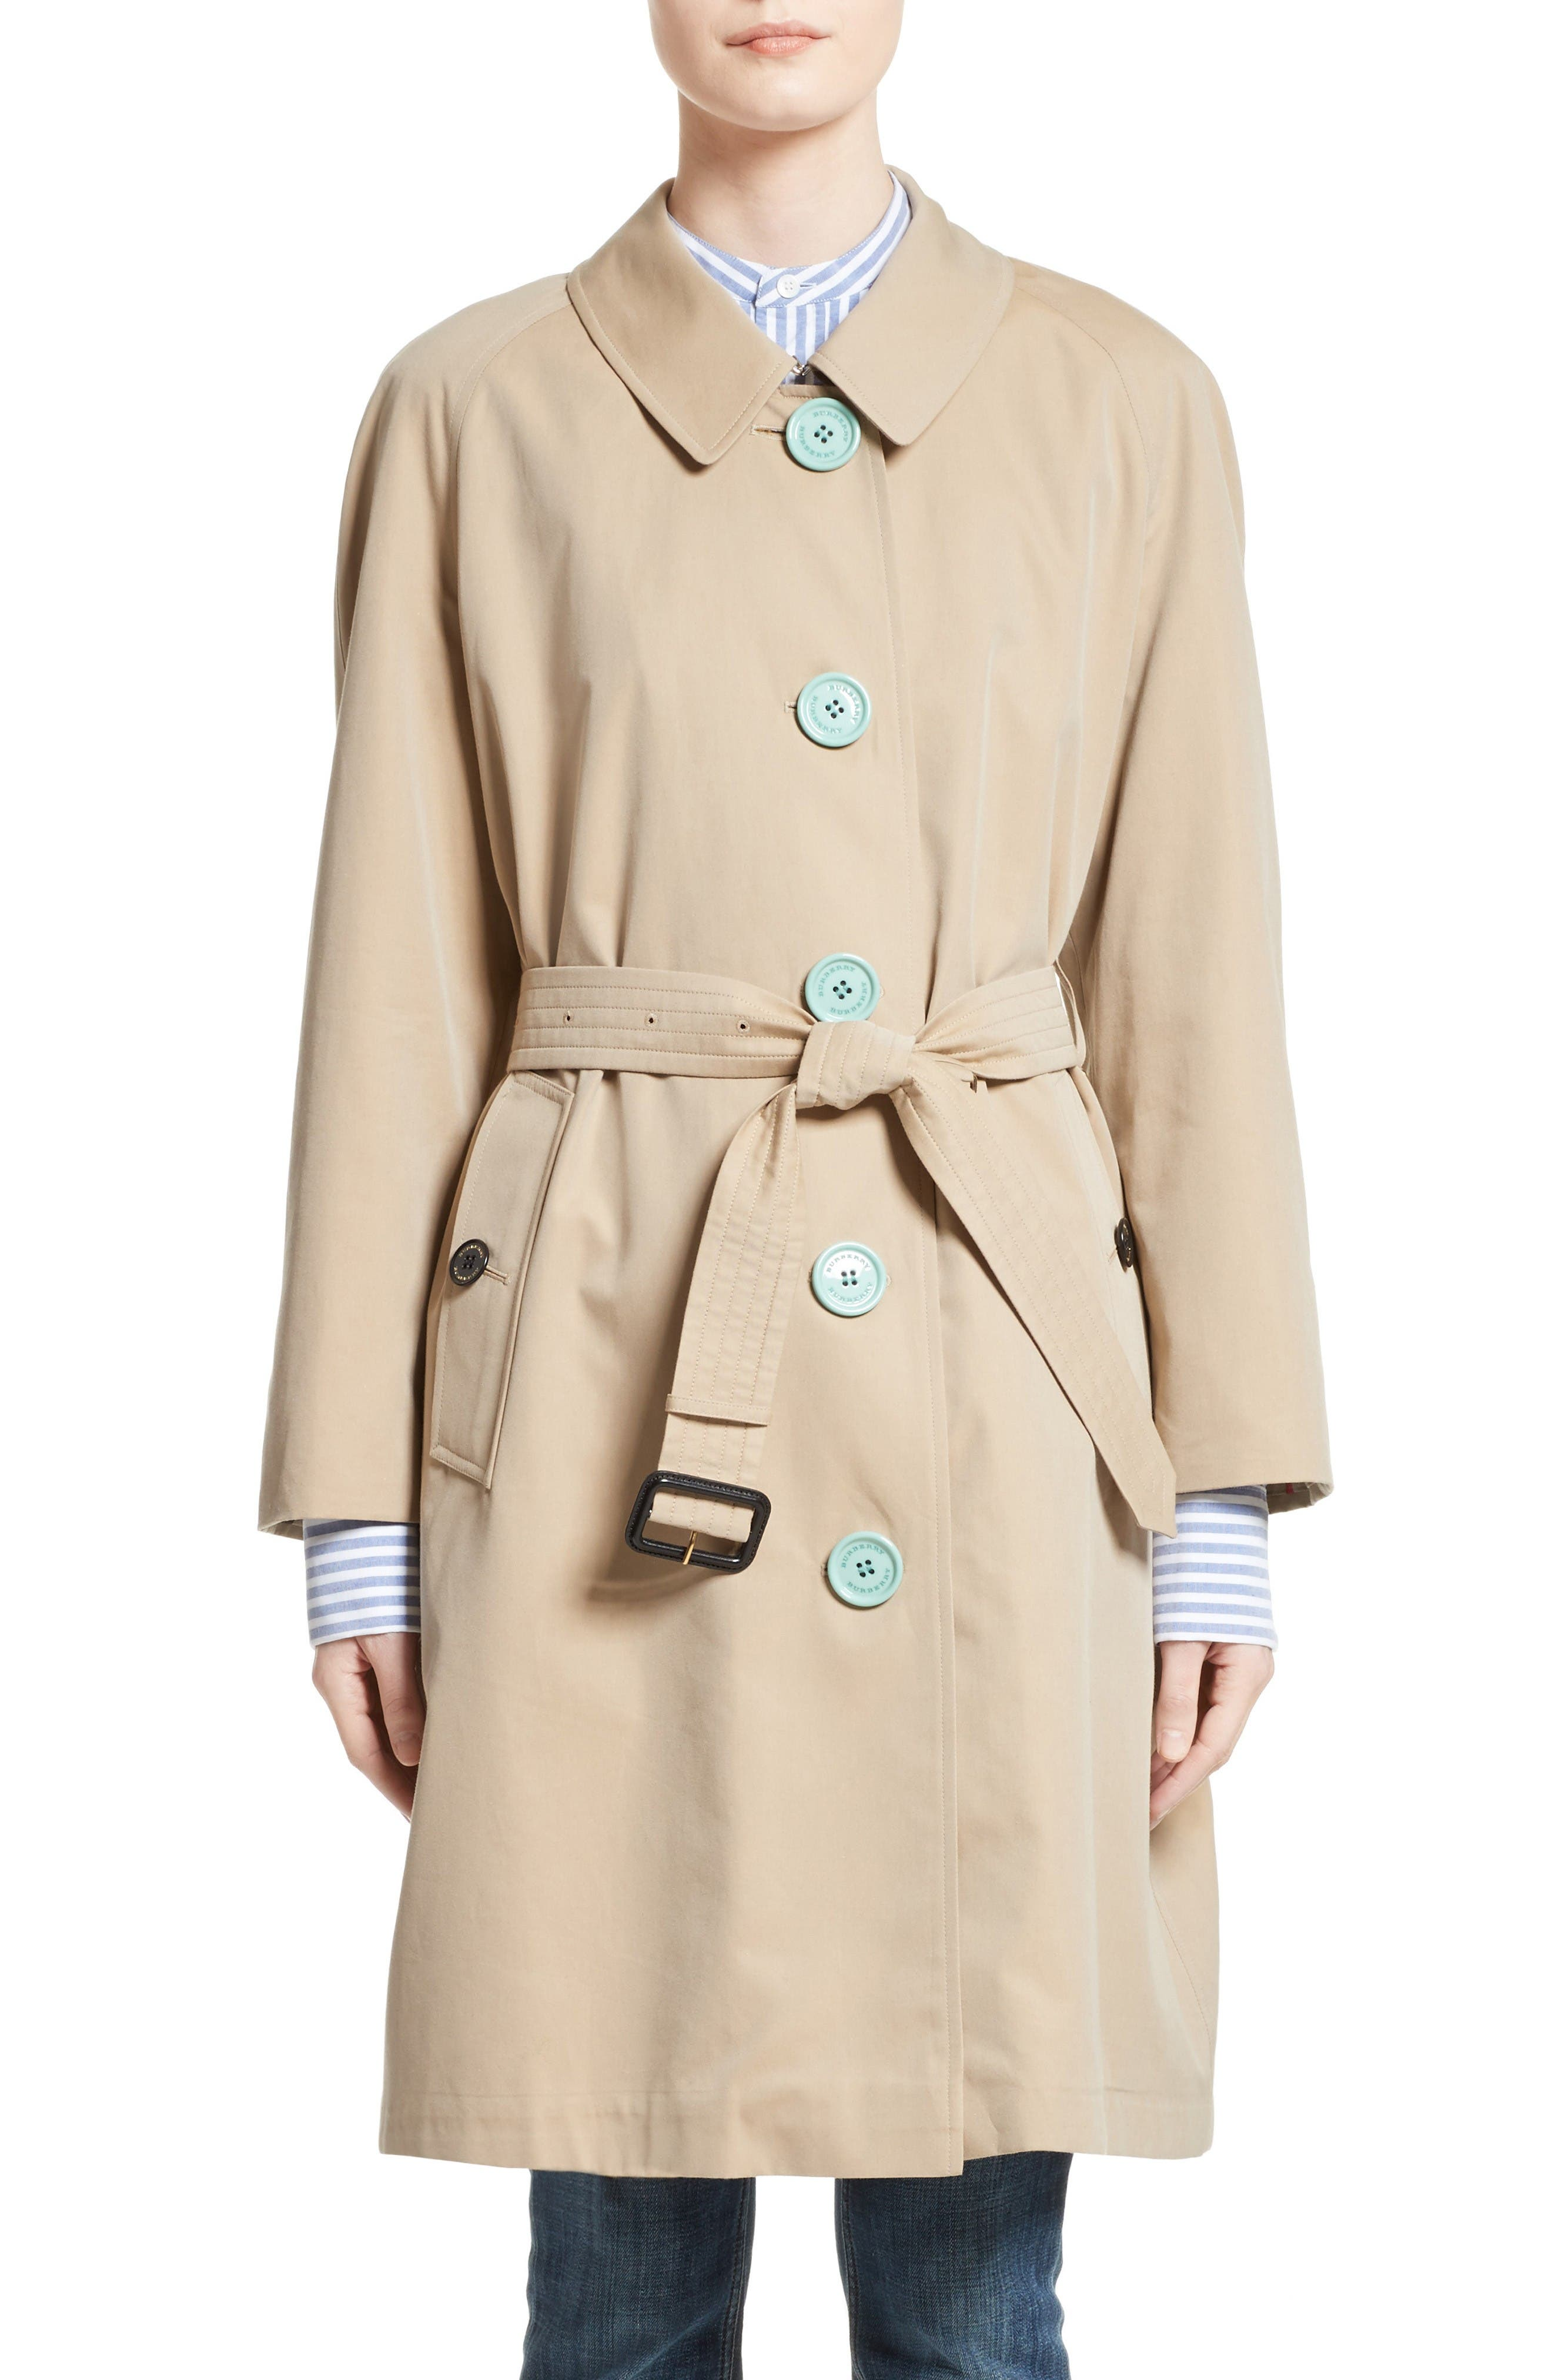 Burberry Brinkhill Trench Coat